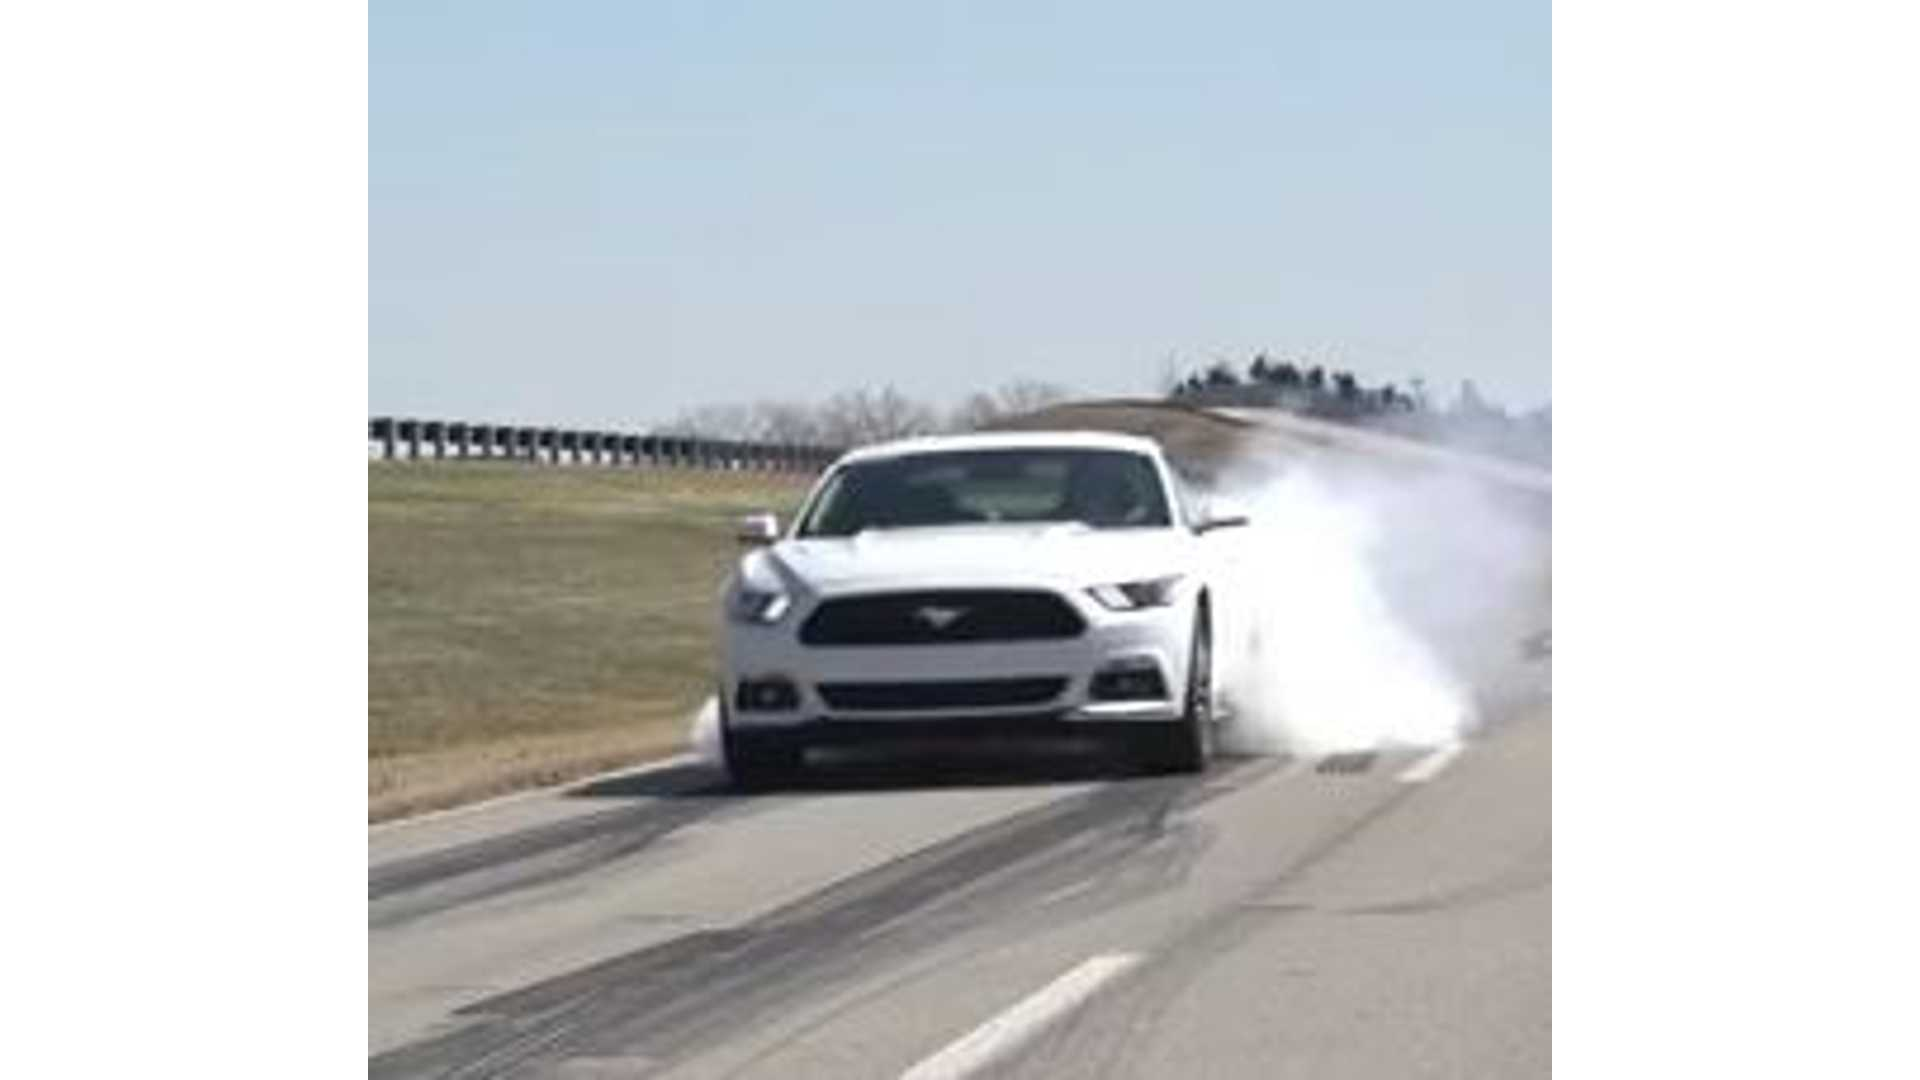 hoorah for progress or not with line lock 2015 ford mustang gt gets 0 mpg line lock 2015 ford mustang gt gets 0 mpg